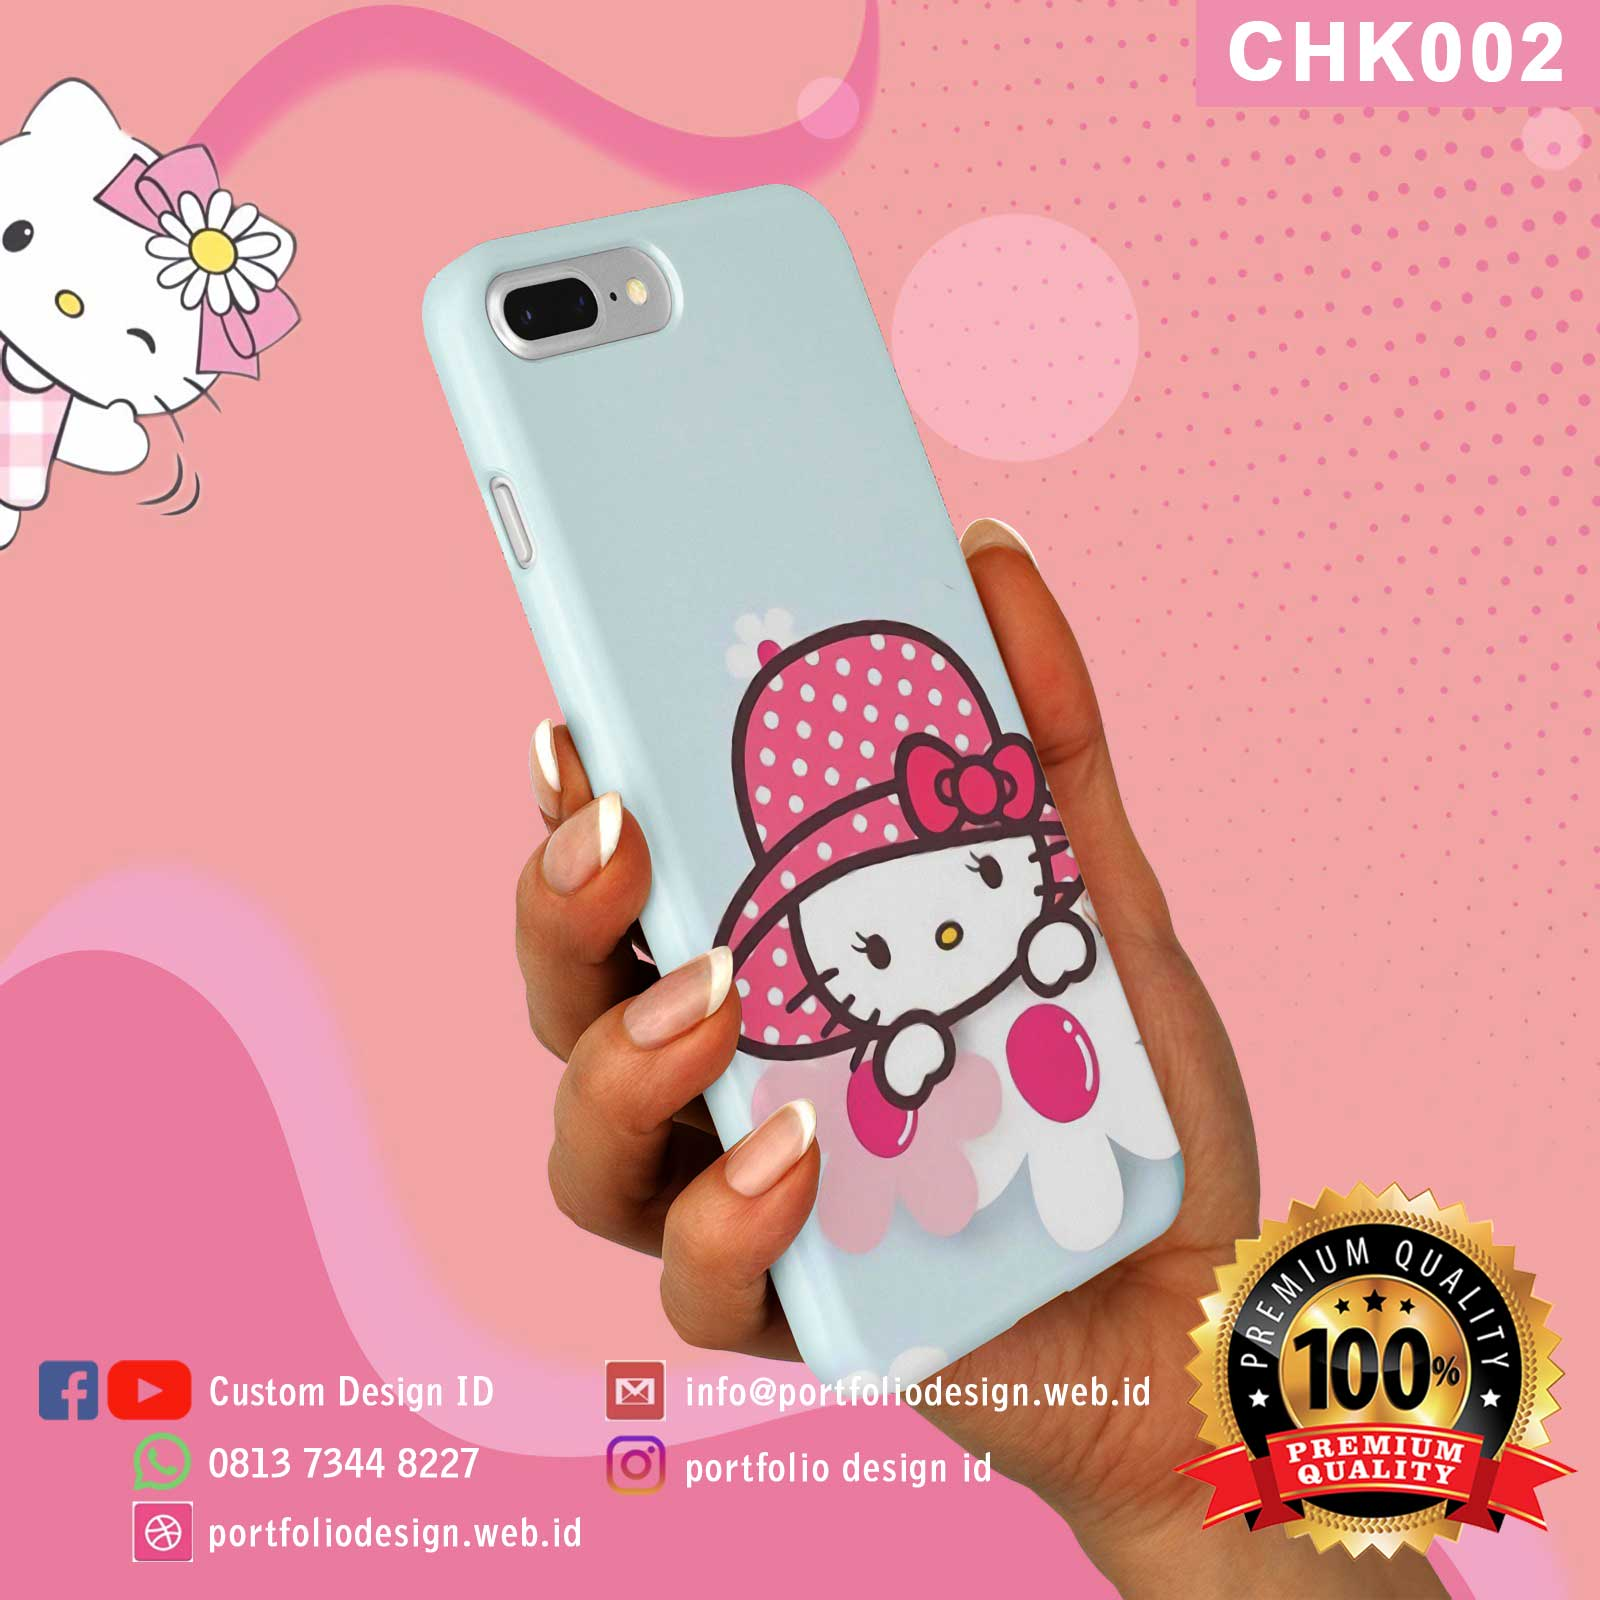 Casing gambar hello kitty CHK002 bahan softcase hardcase